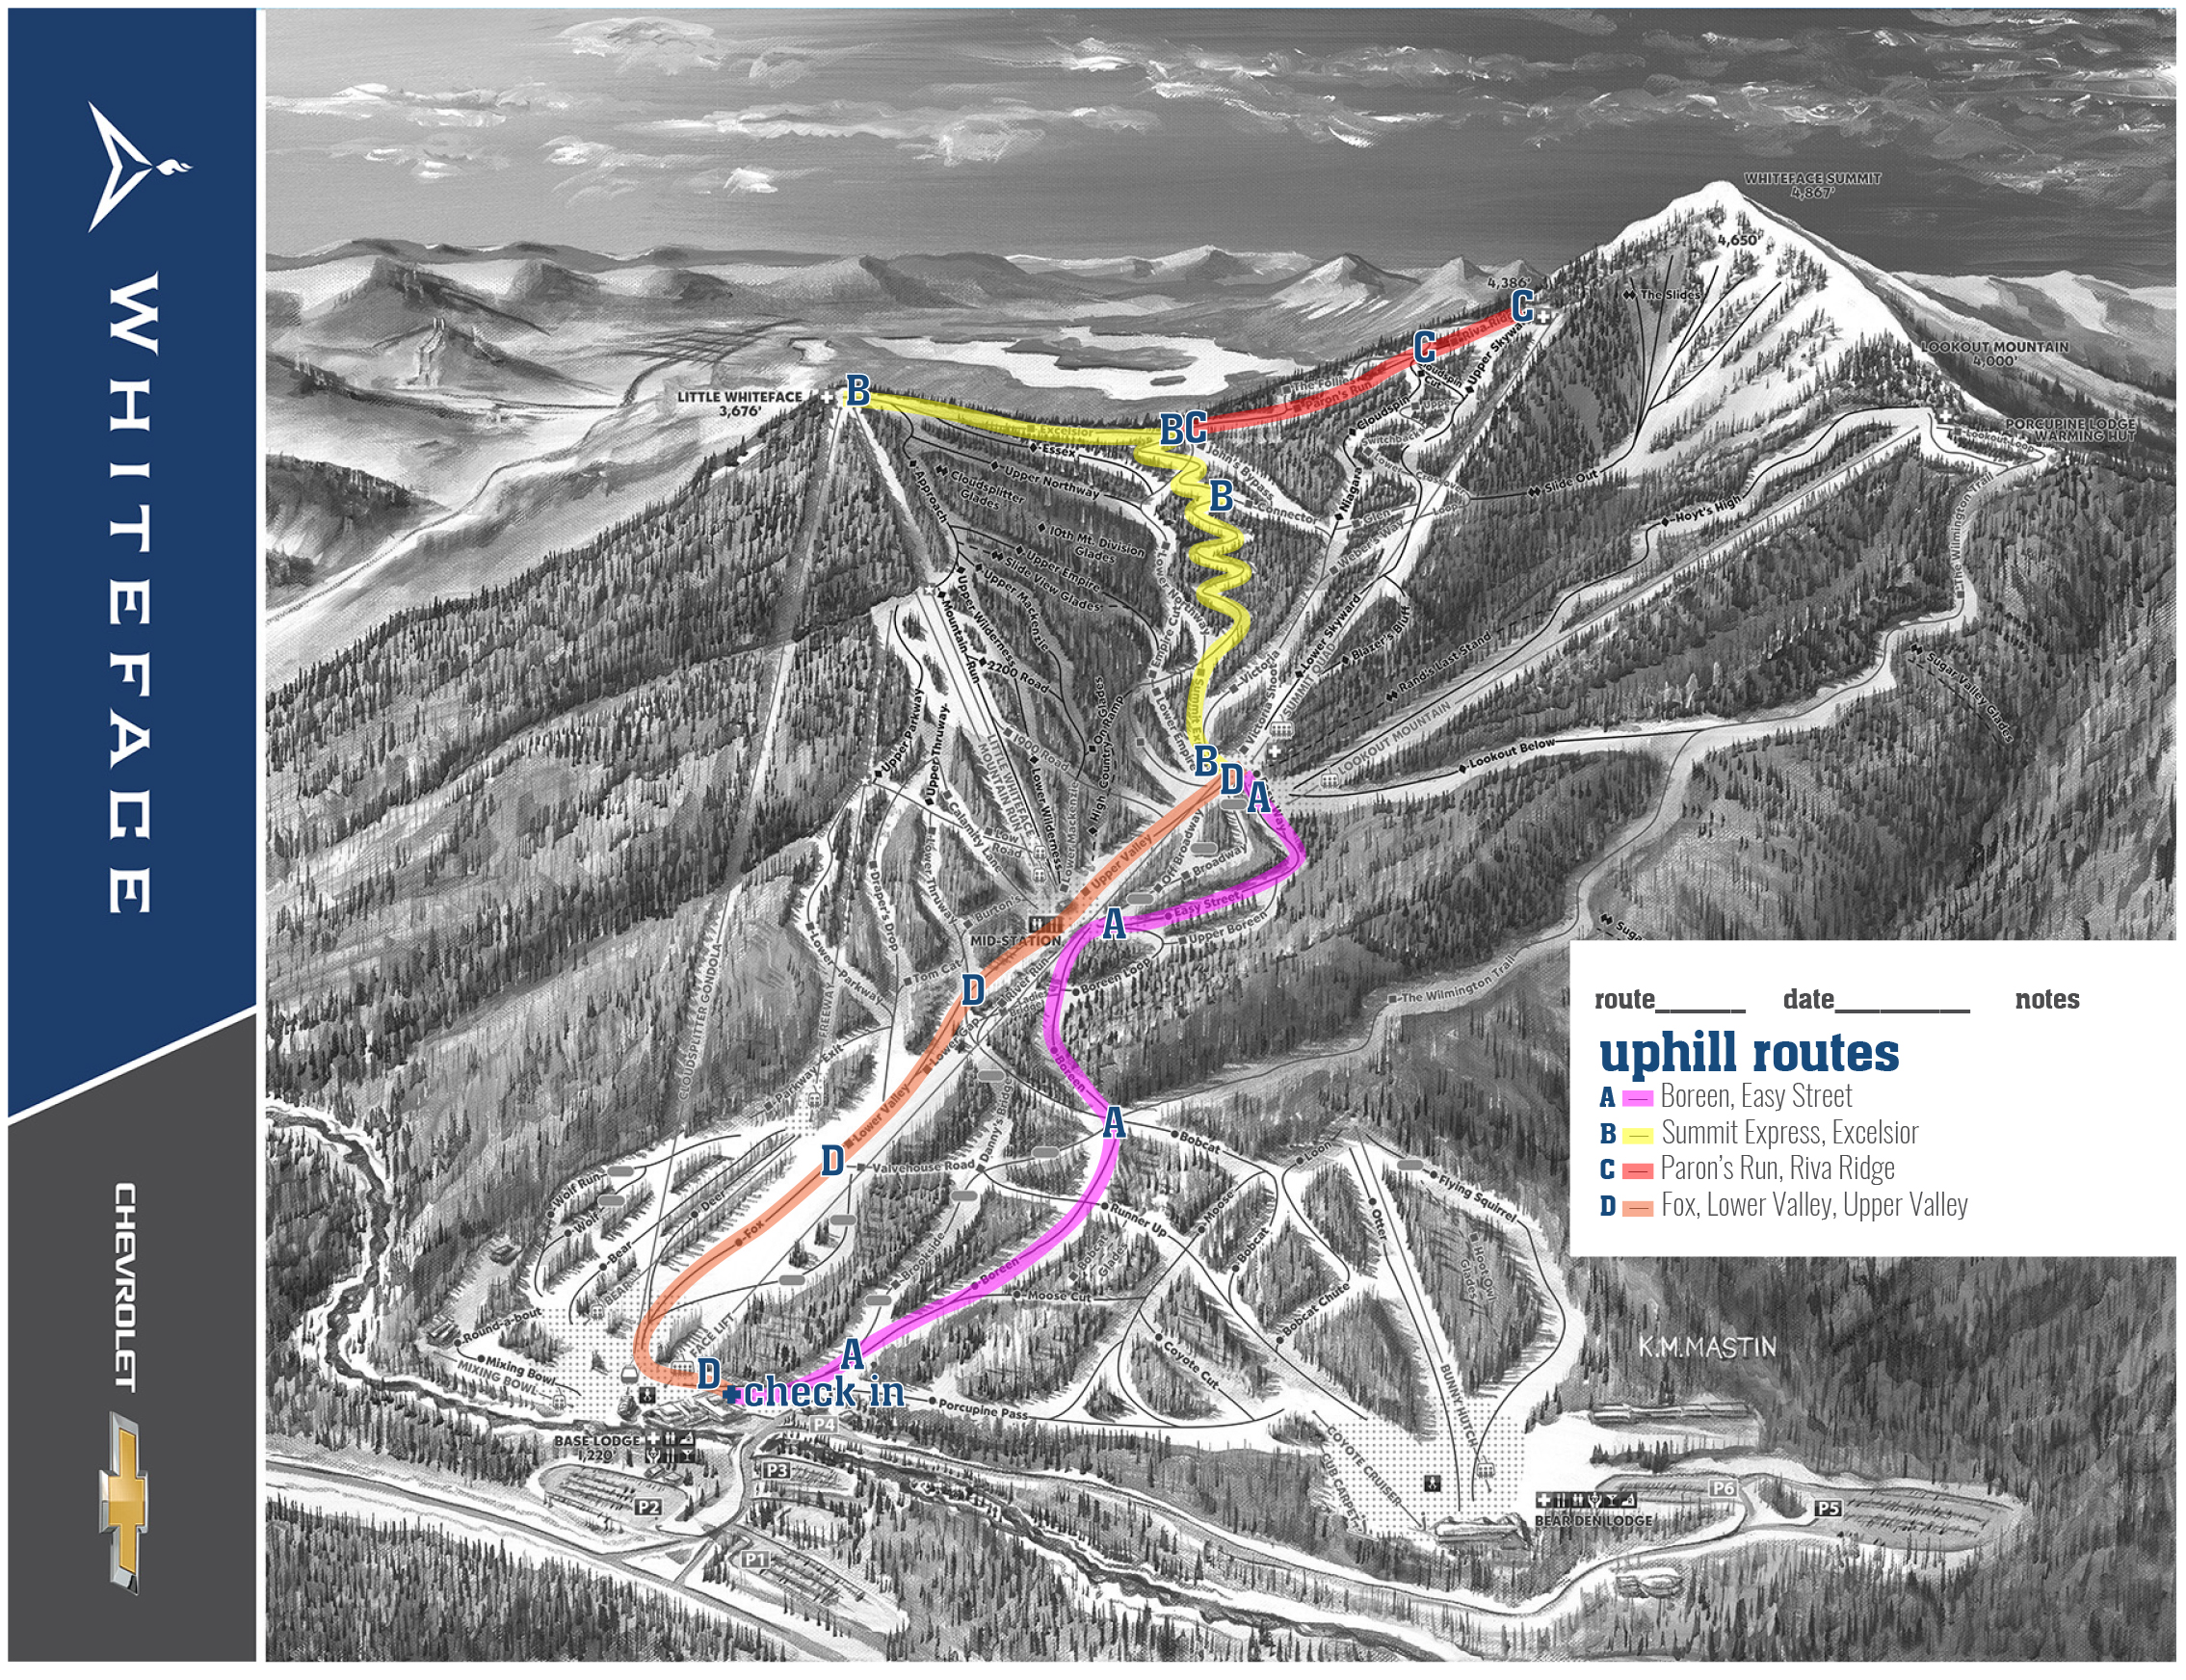 Black & White trail map of Whiteface with Uphill Routes A, B, C, D.